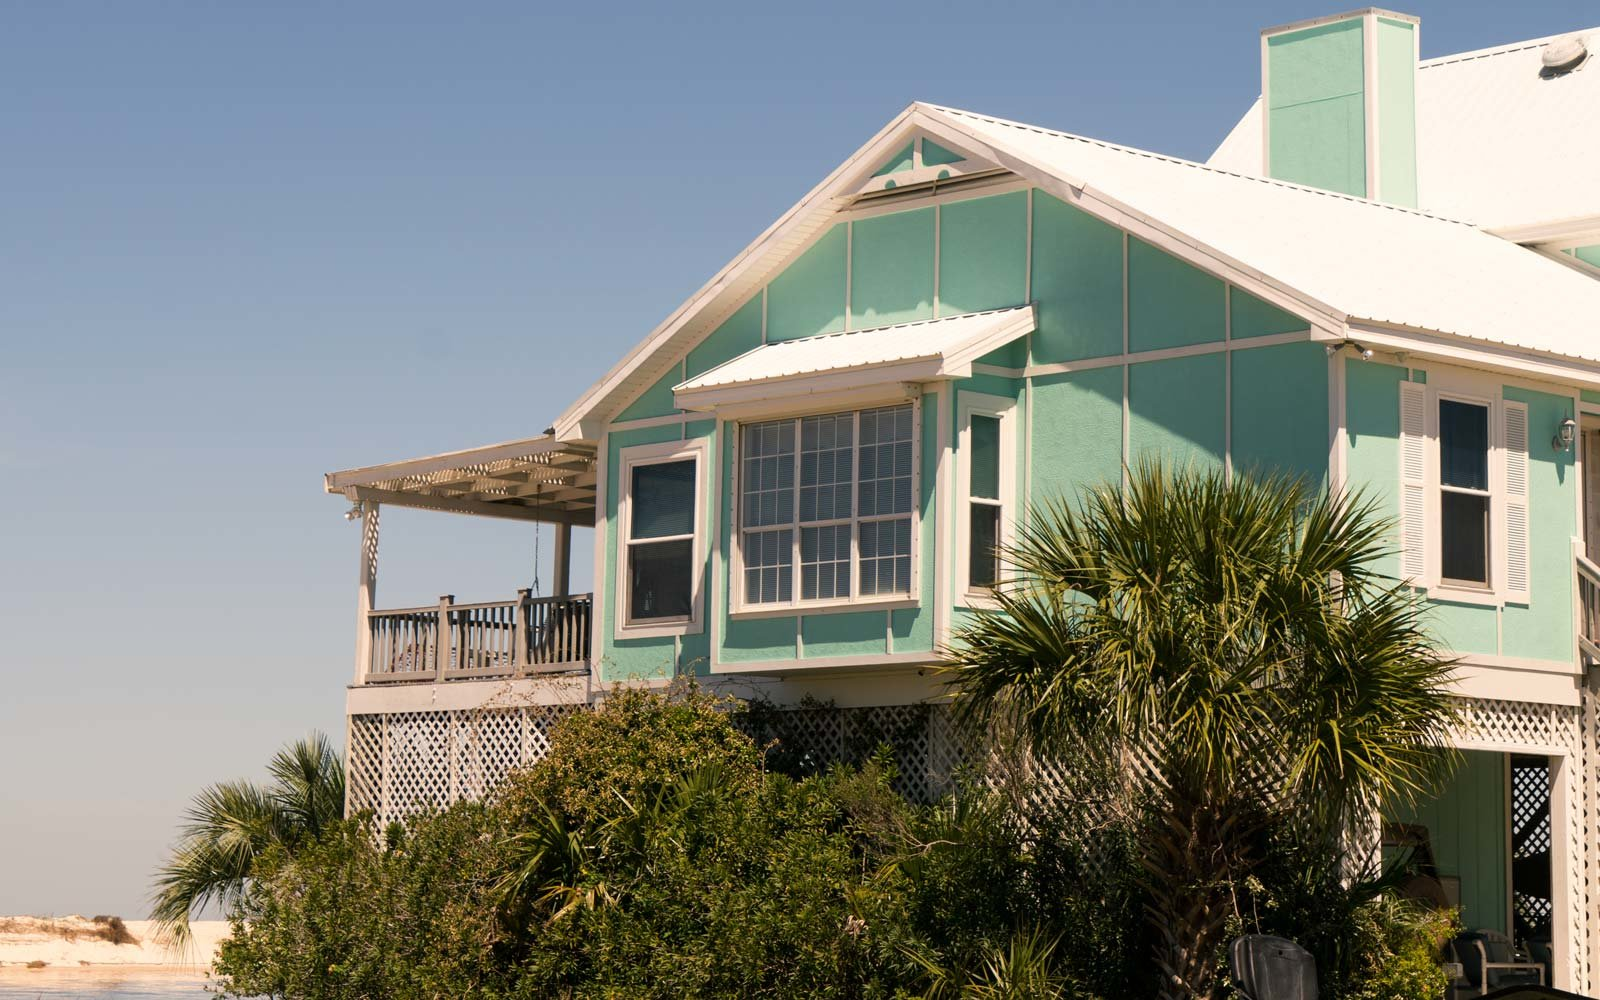 rental-cottage-DAUPHINISLAND0517.jpg